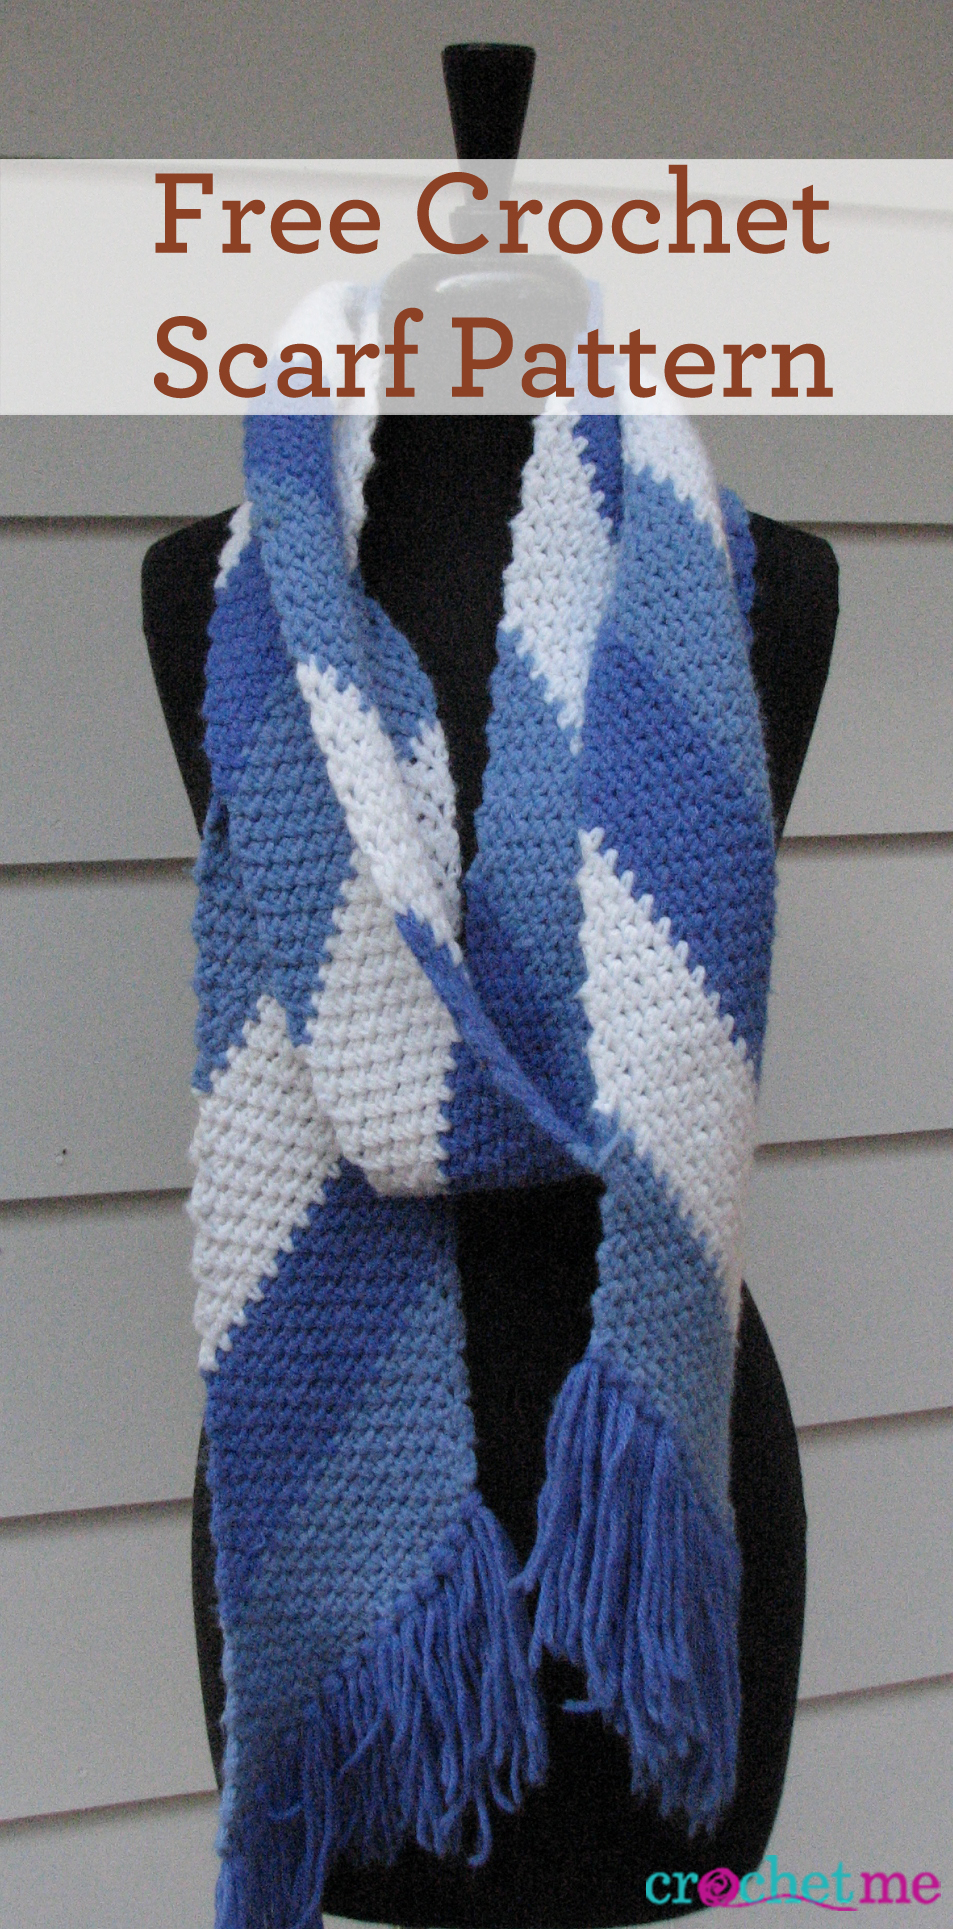 Knitting Scarf Pattern For Beginners Free Free Crochet Simple Striped Scarf Pattern Interweave